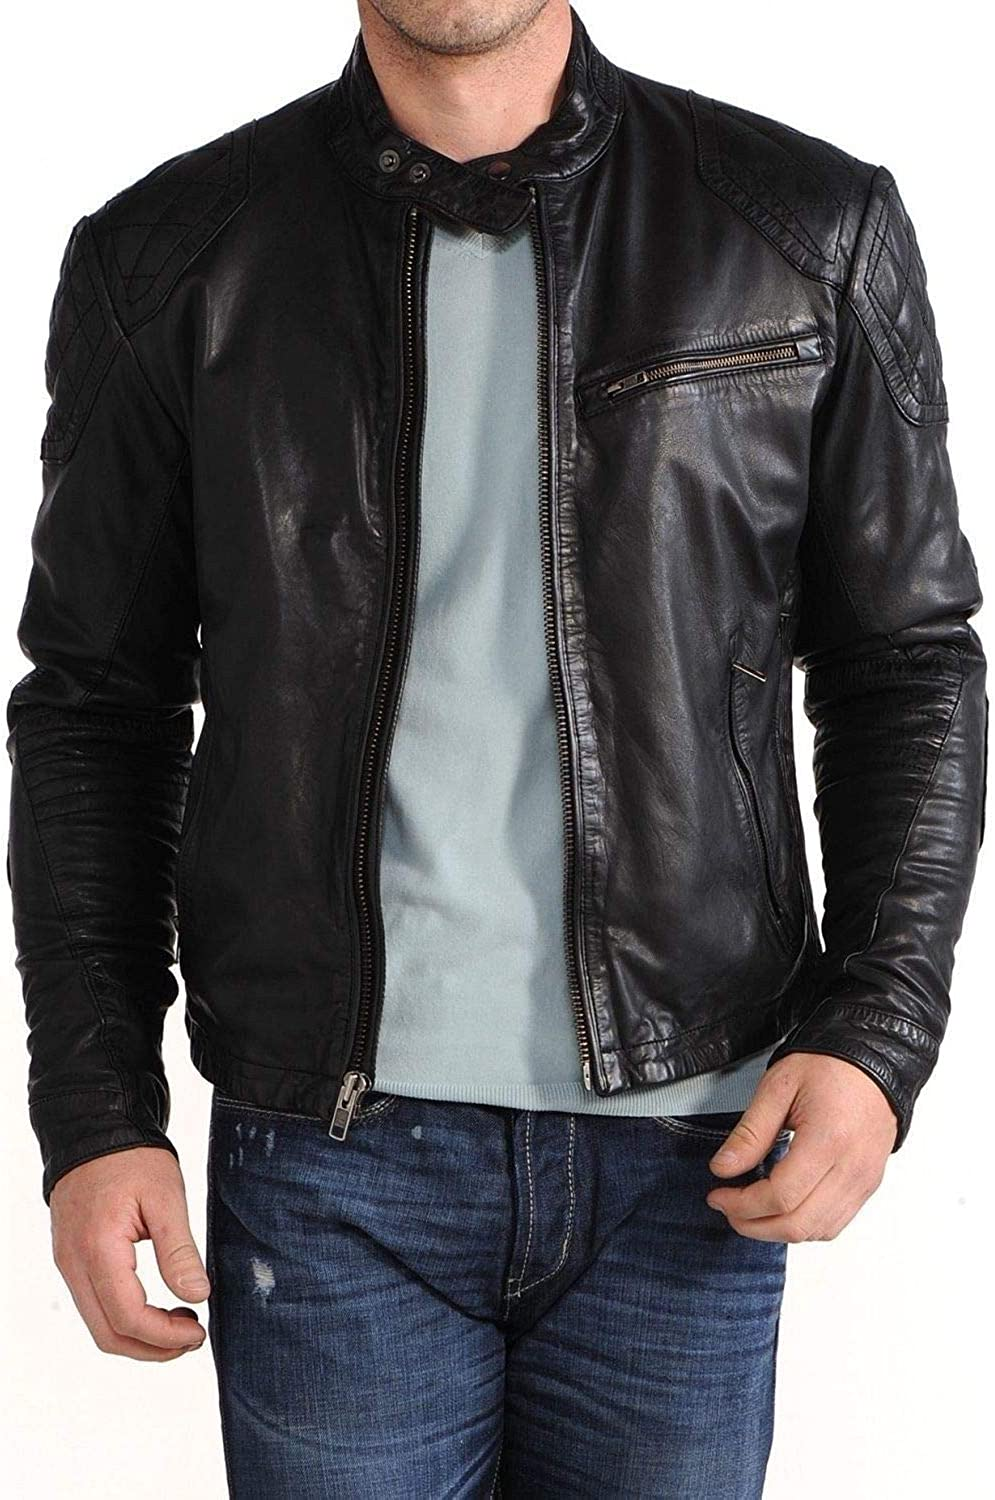 New Max Import 86% OFF Fashion Style Mens Leather Biker Jackets Motorcycle B Bomber